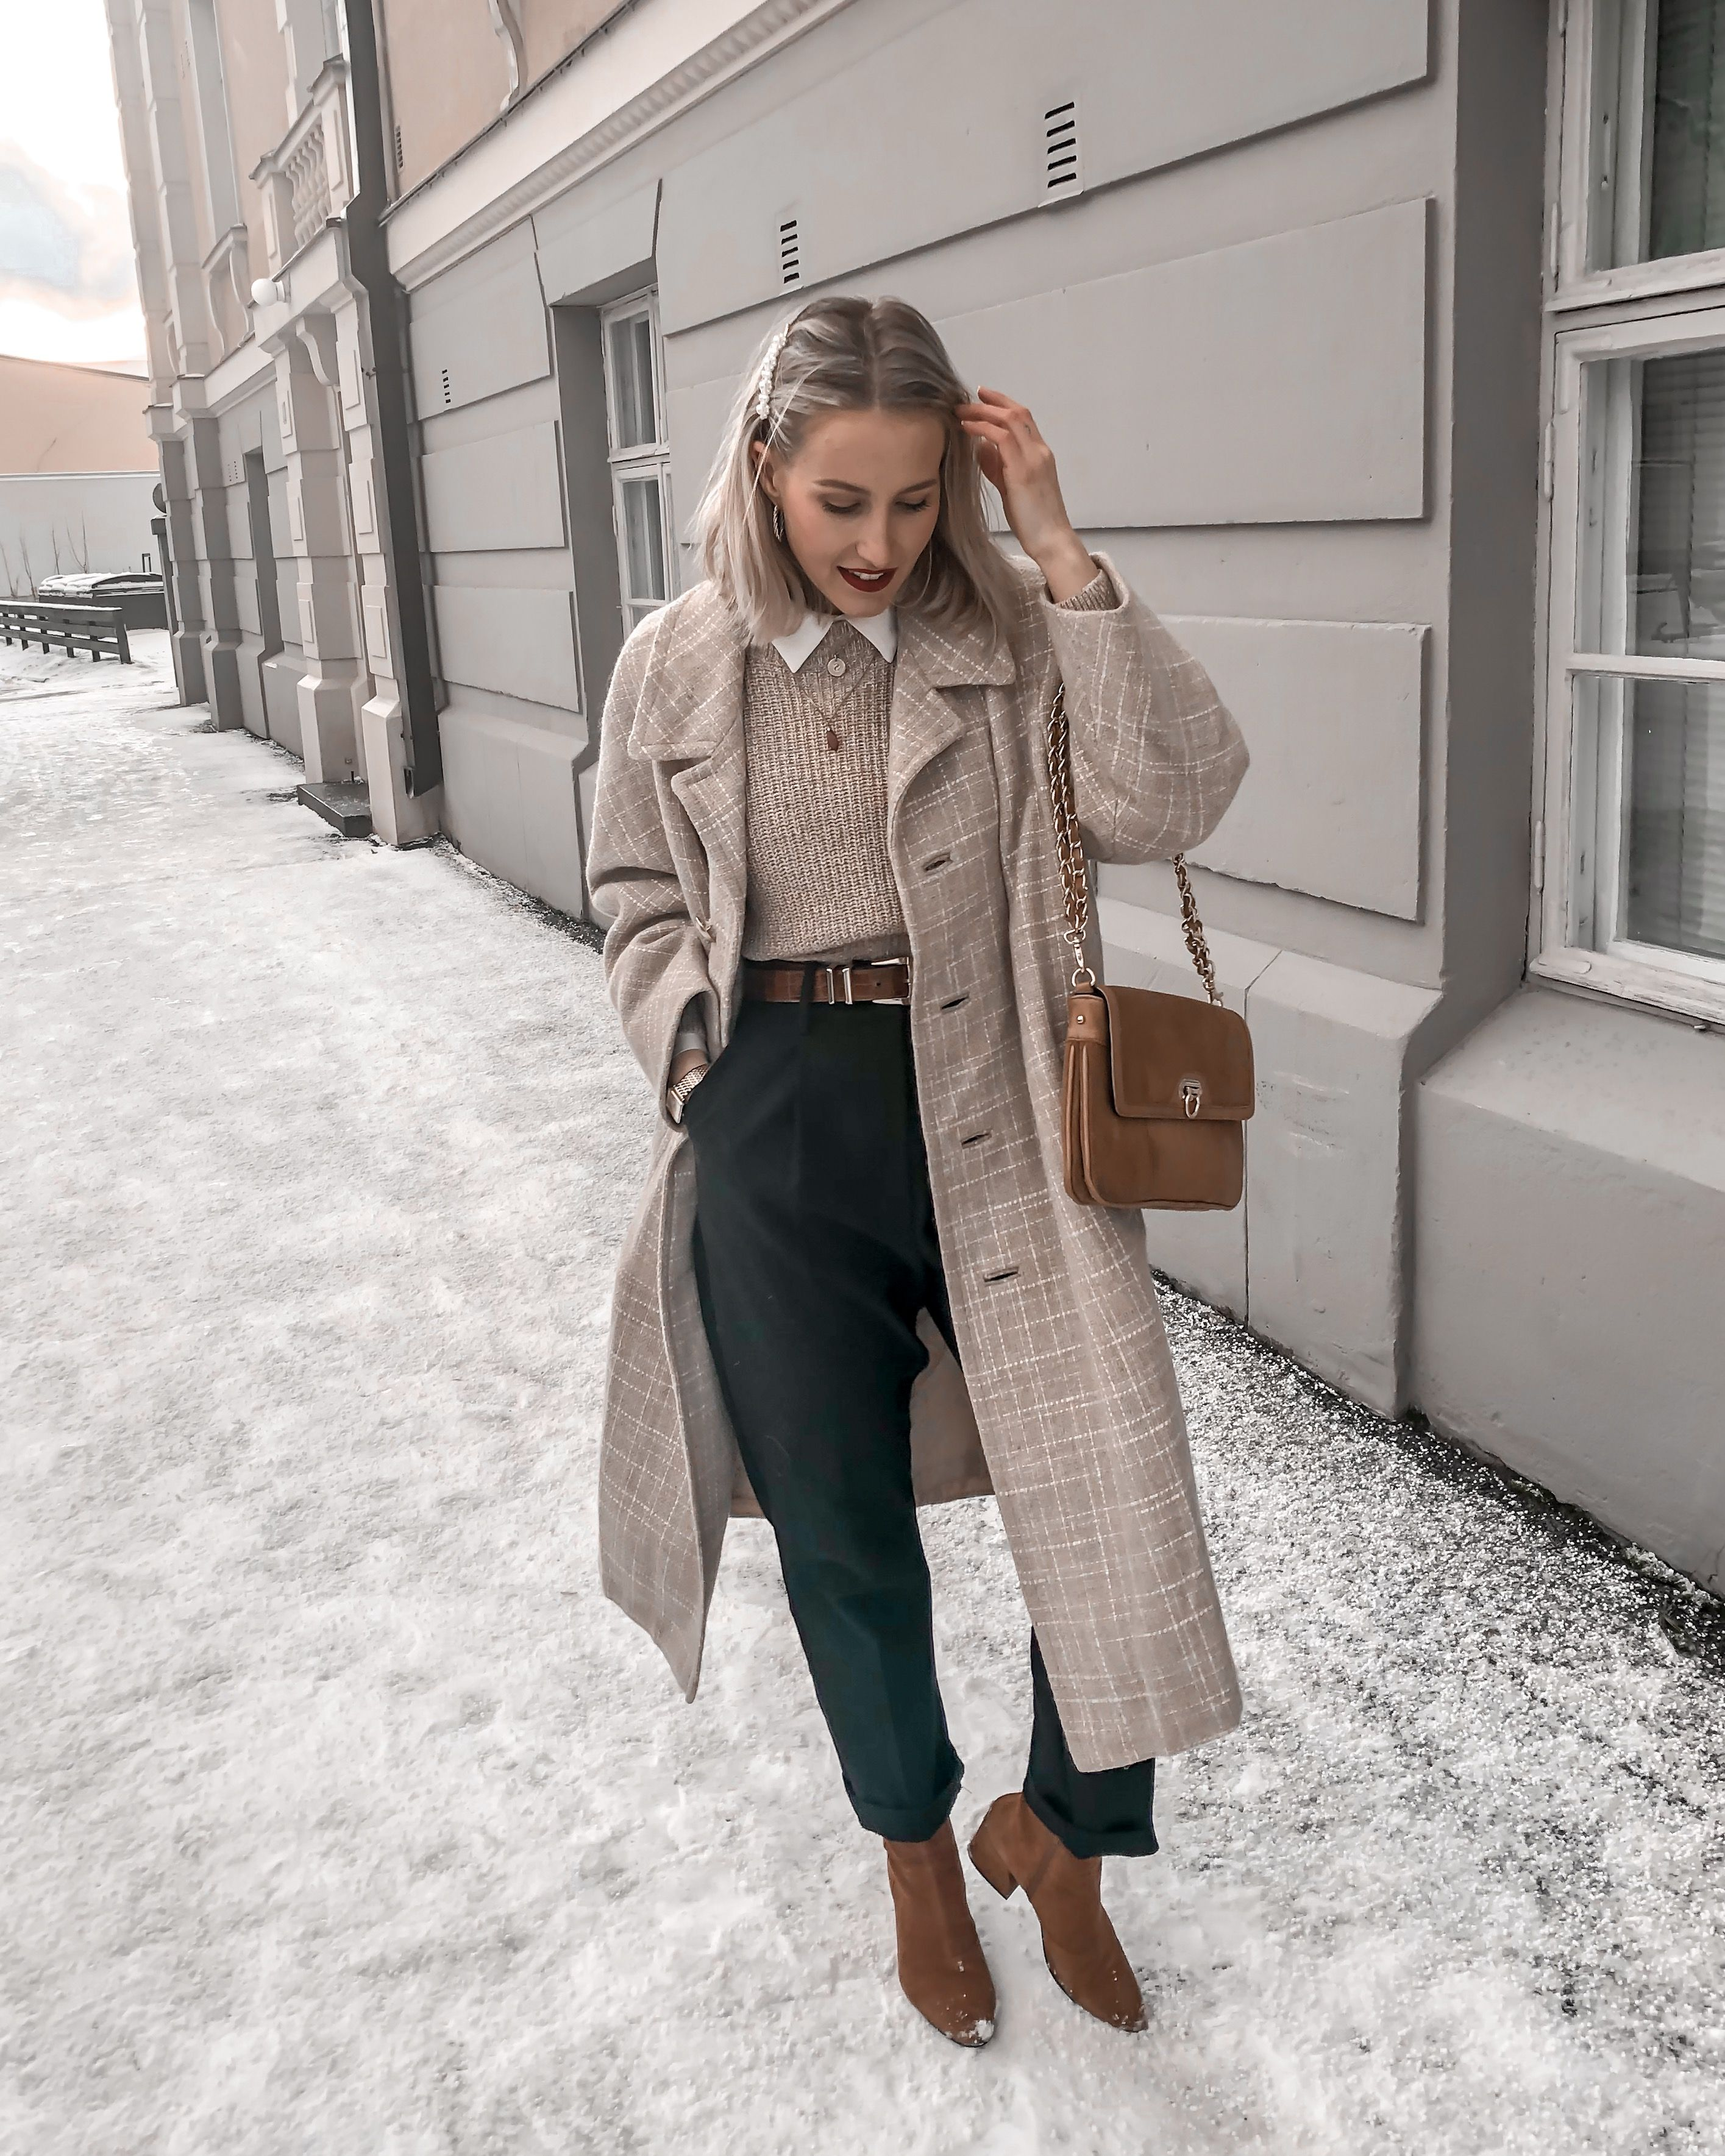 Scandinavian Winter Outfit Winter Fashion Outfits Winter Outfits Warm Casual Winter Outfits